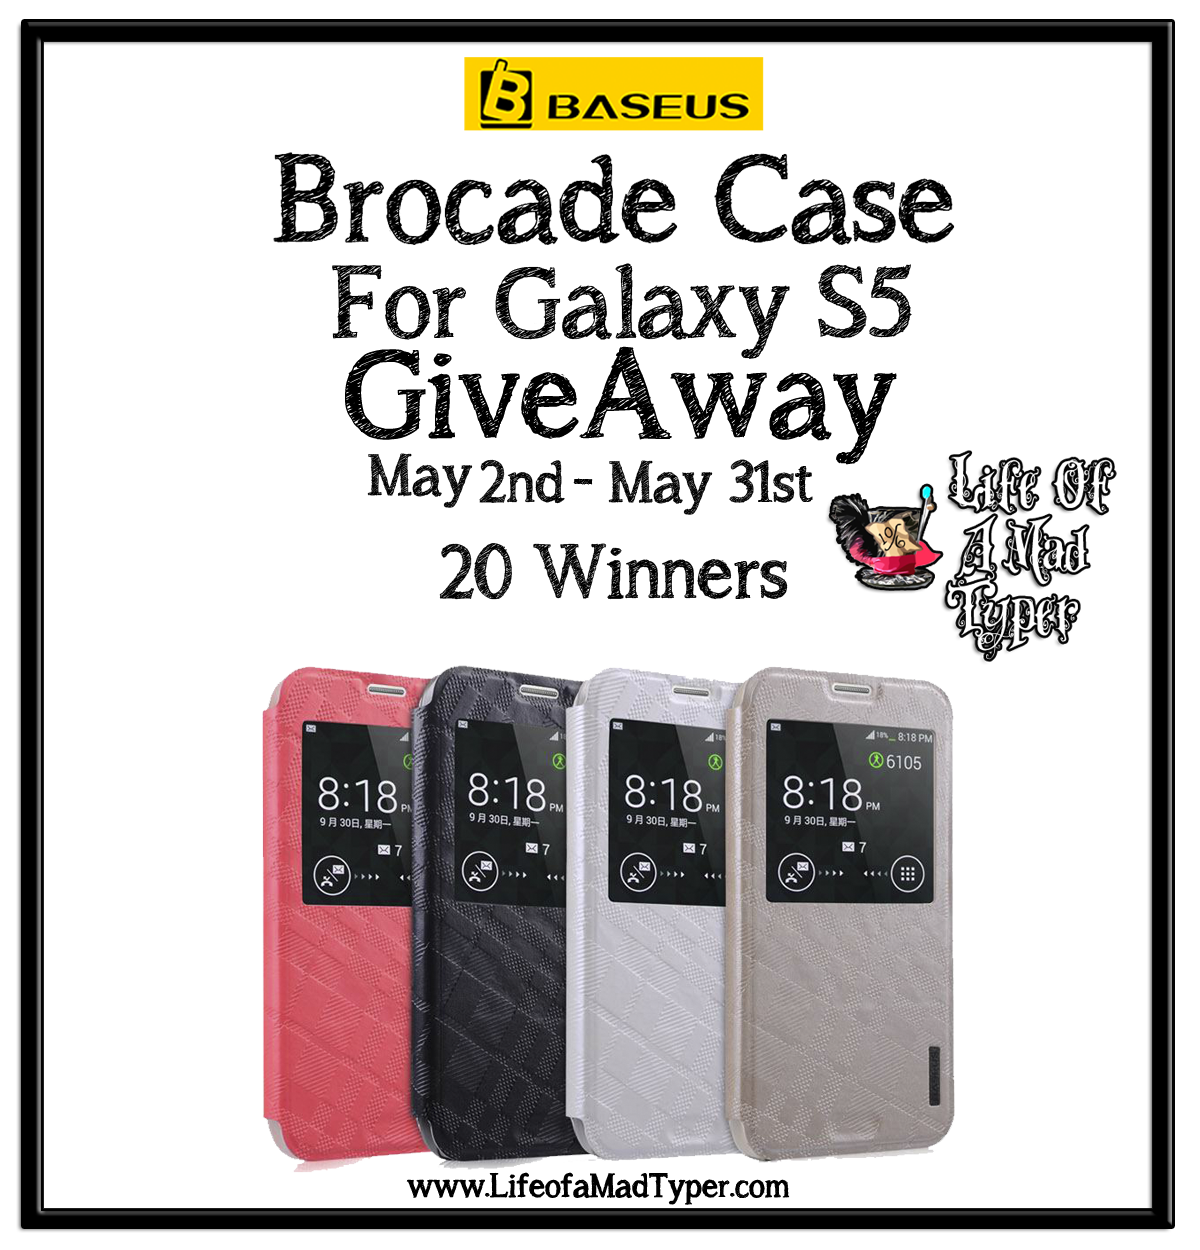 Galaxy S5 Brocade case by BASEUS #giveaway